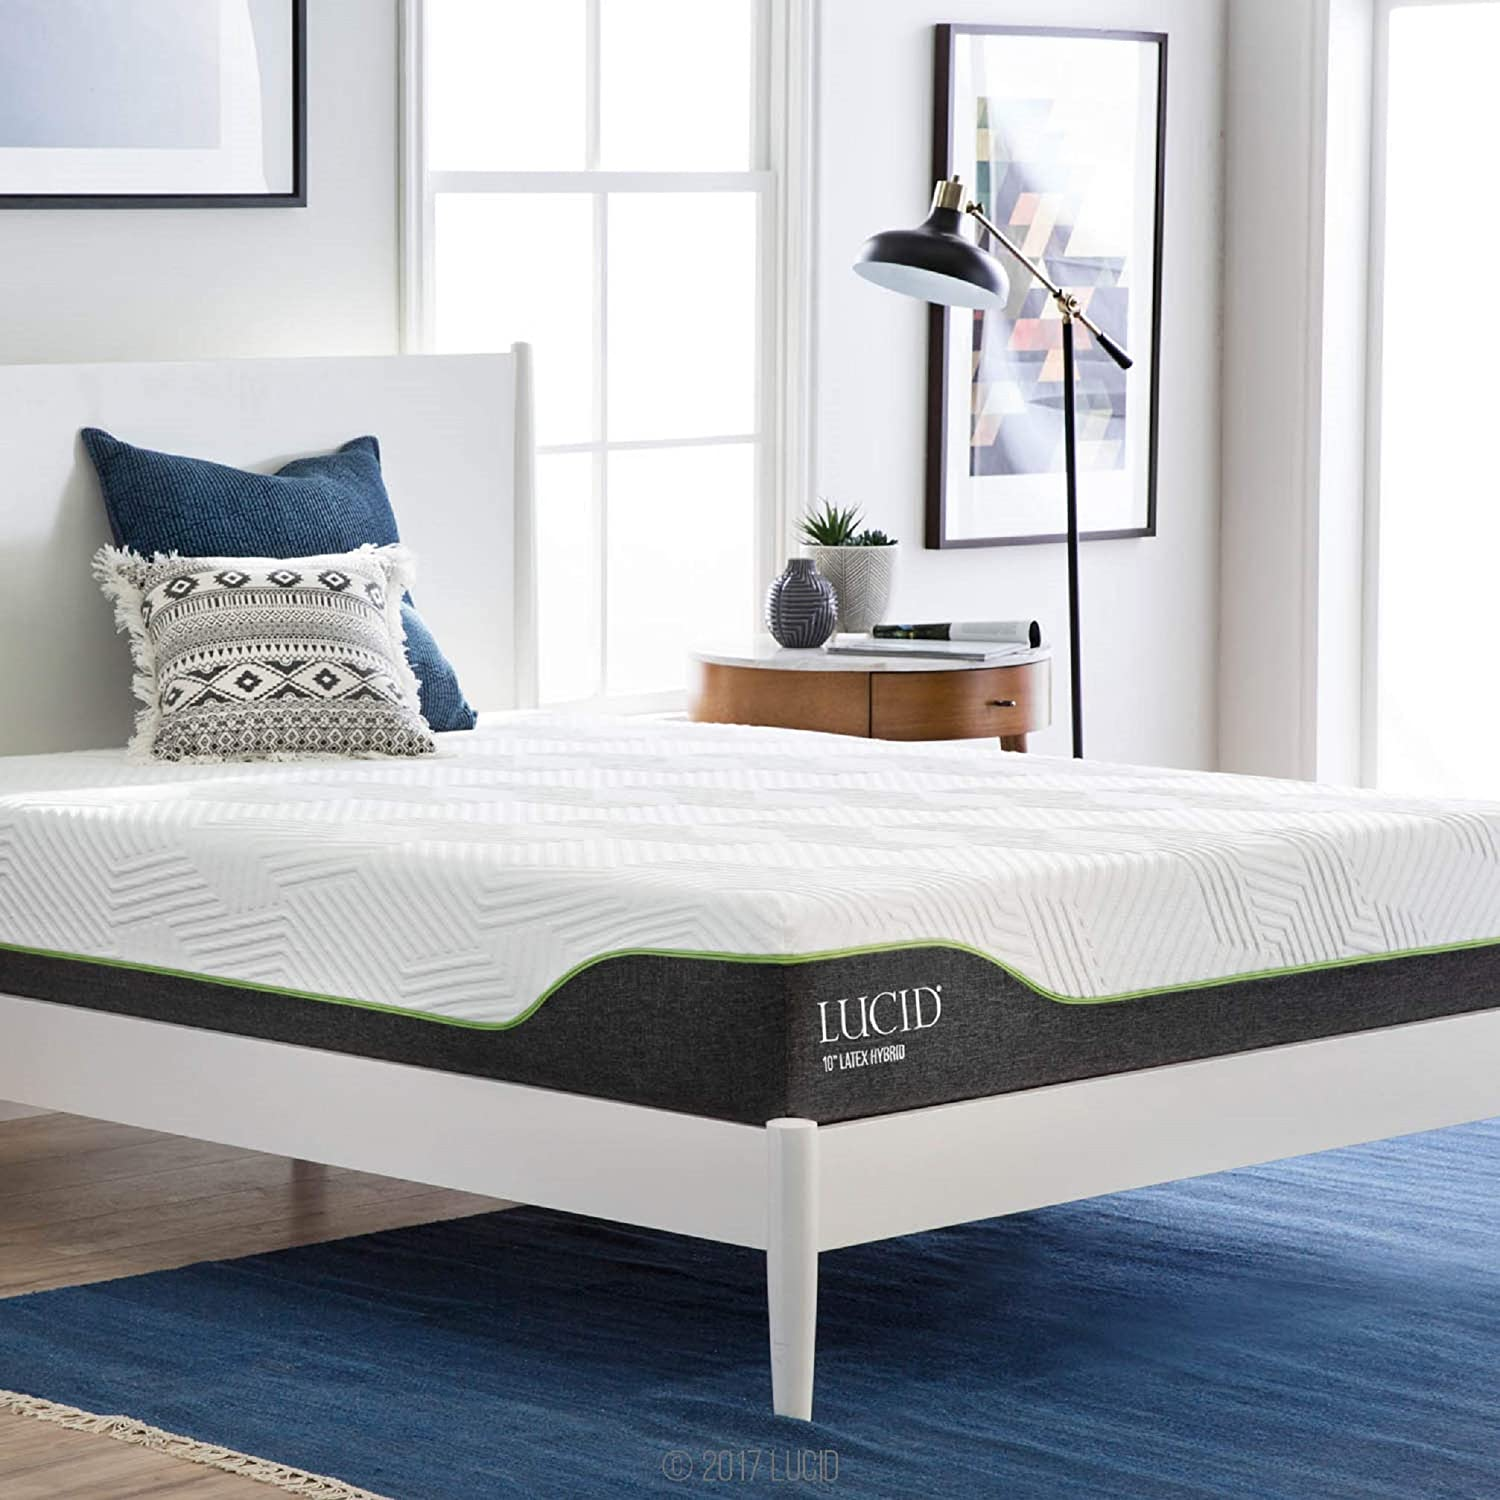 LUCID 10 Inch King Latex Hybrid Mattress